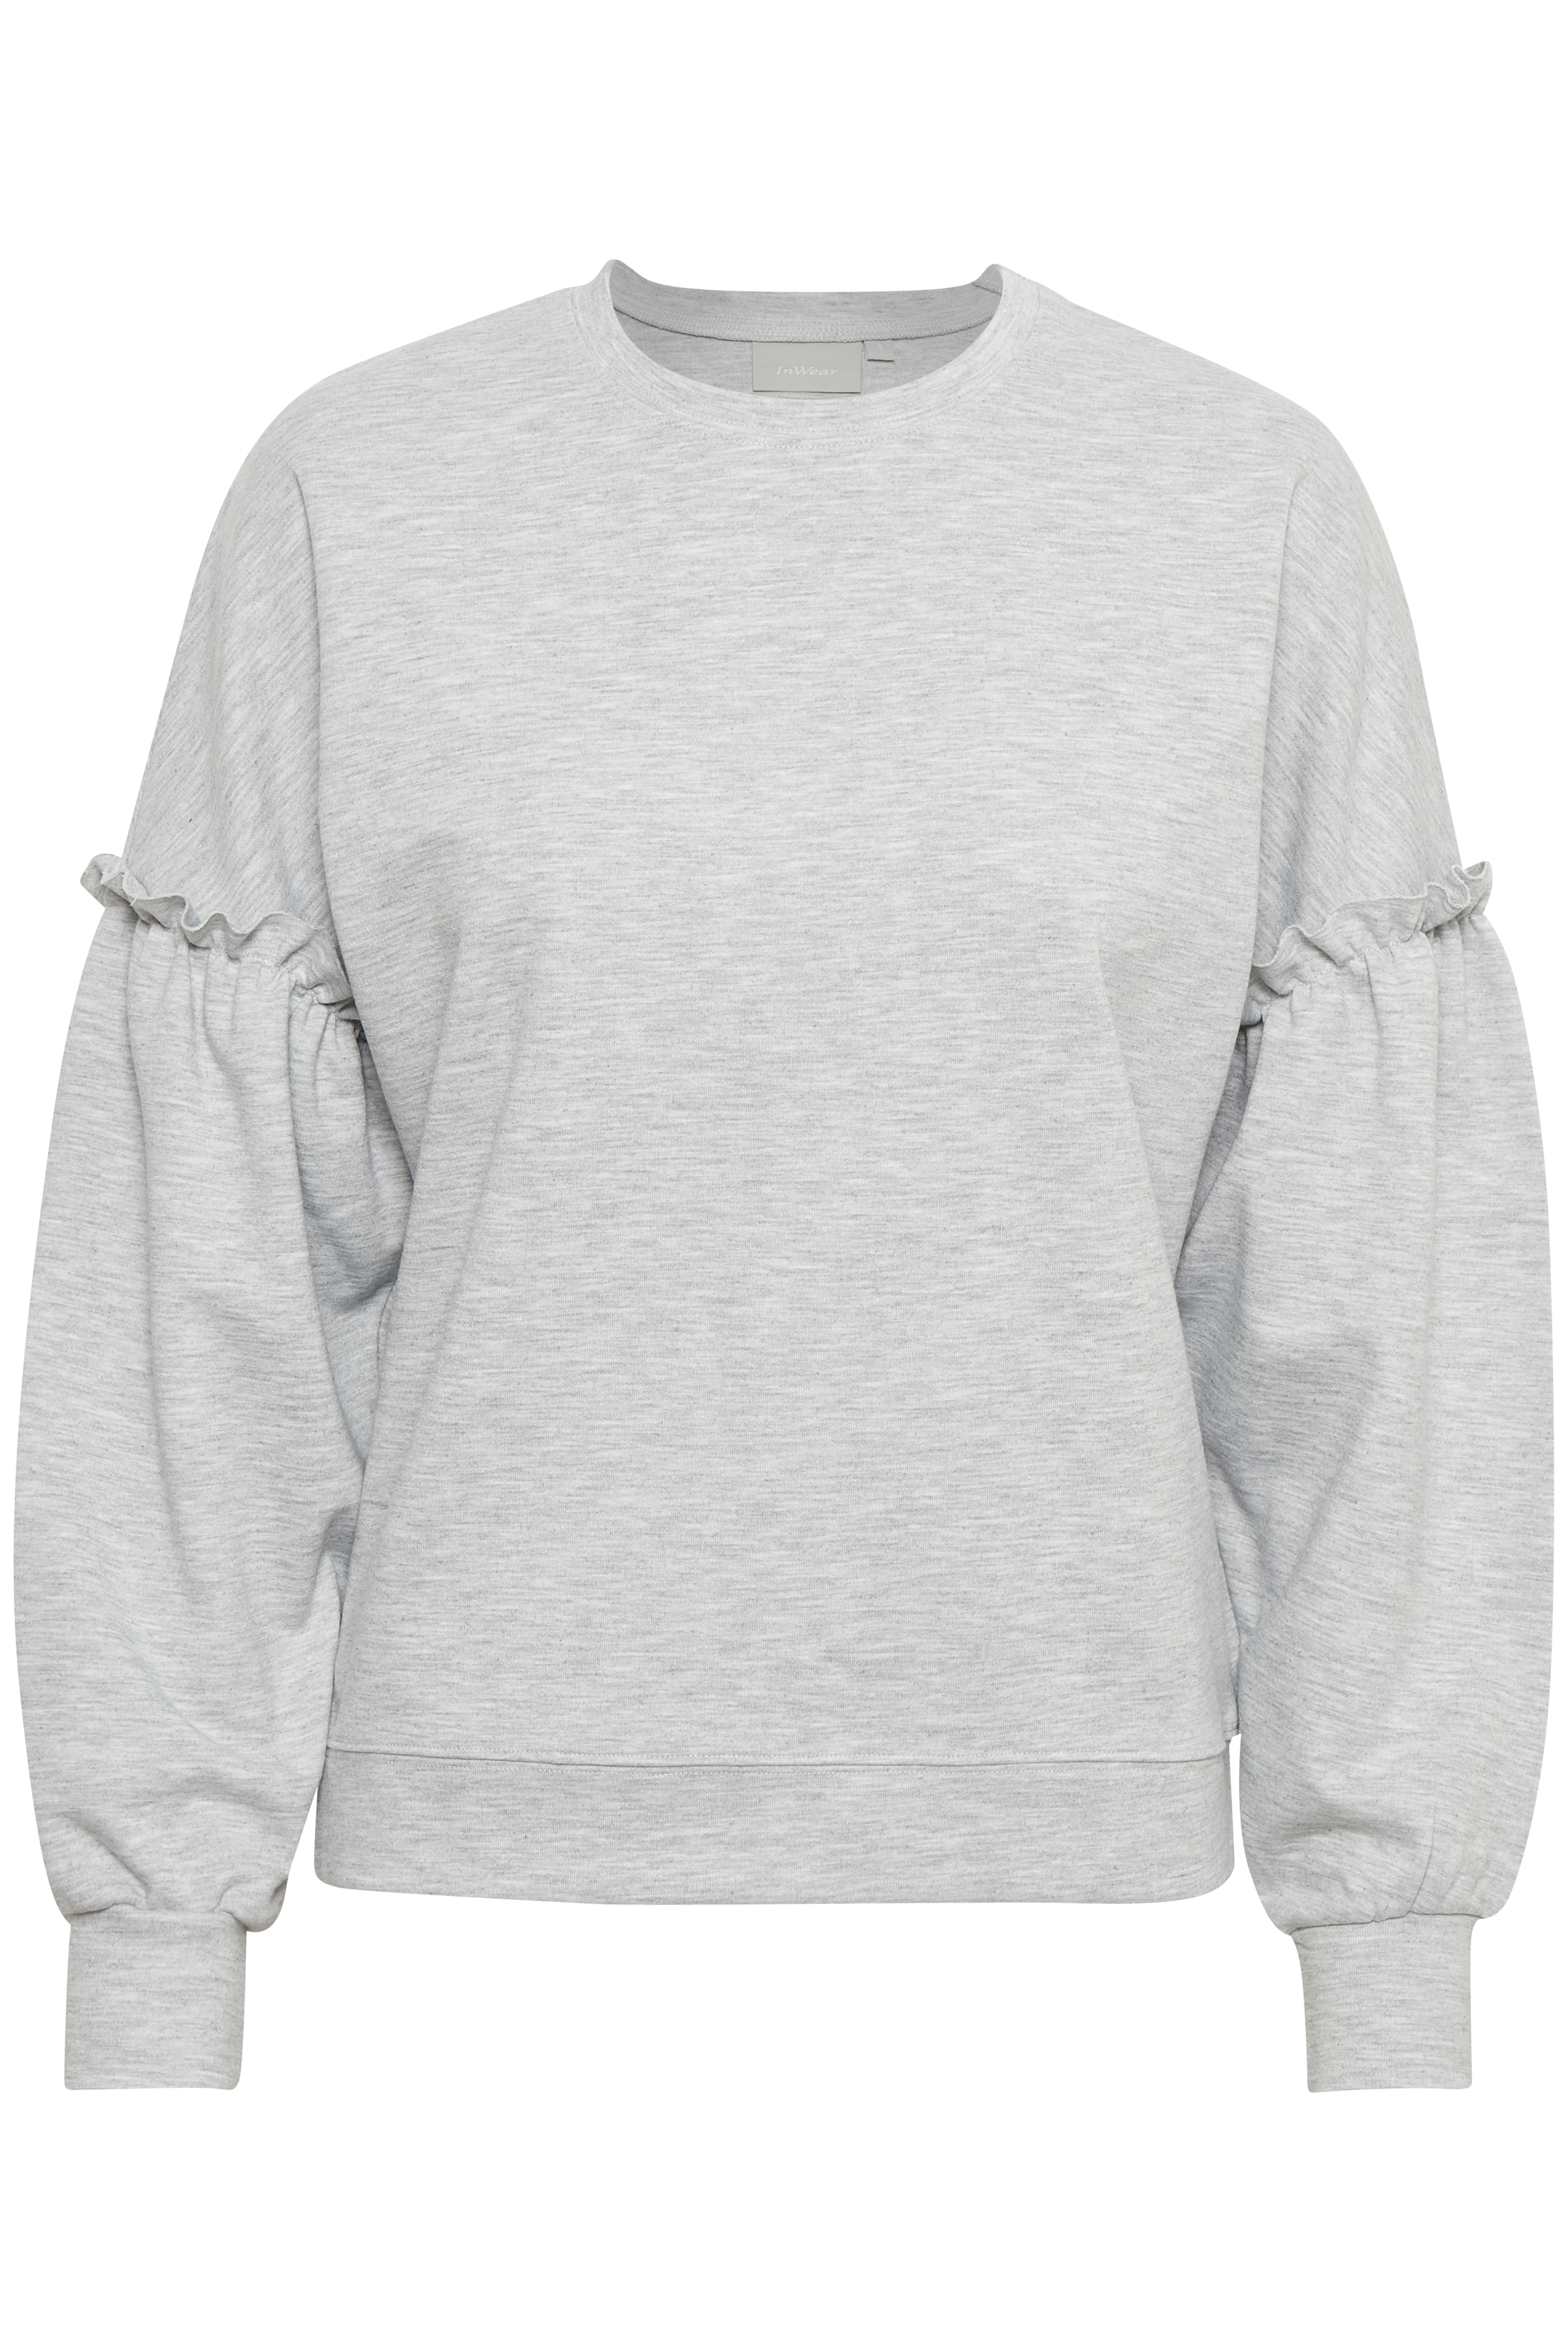 New Light Grey Melange Langærmet T-shirt – Køb New Light Grey Melange Langærmet T-shirt fra str. XS-XL her